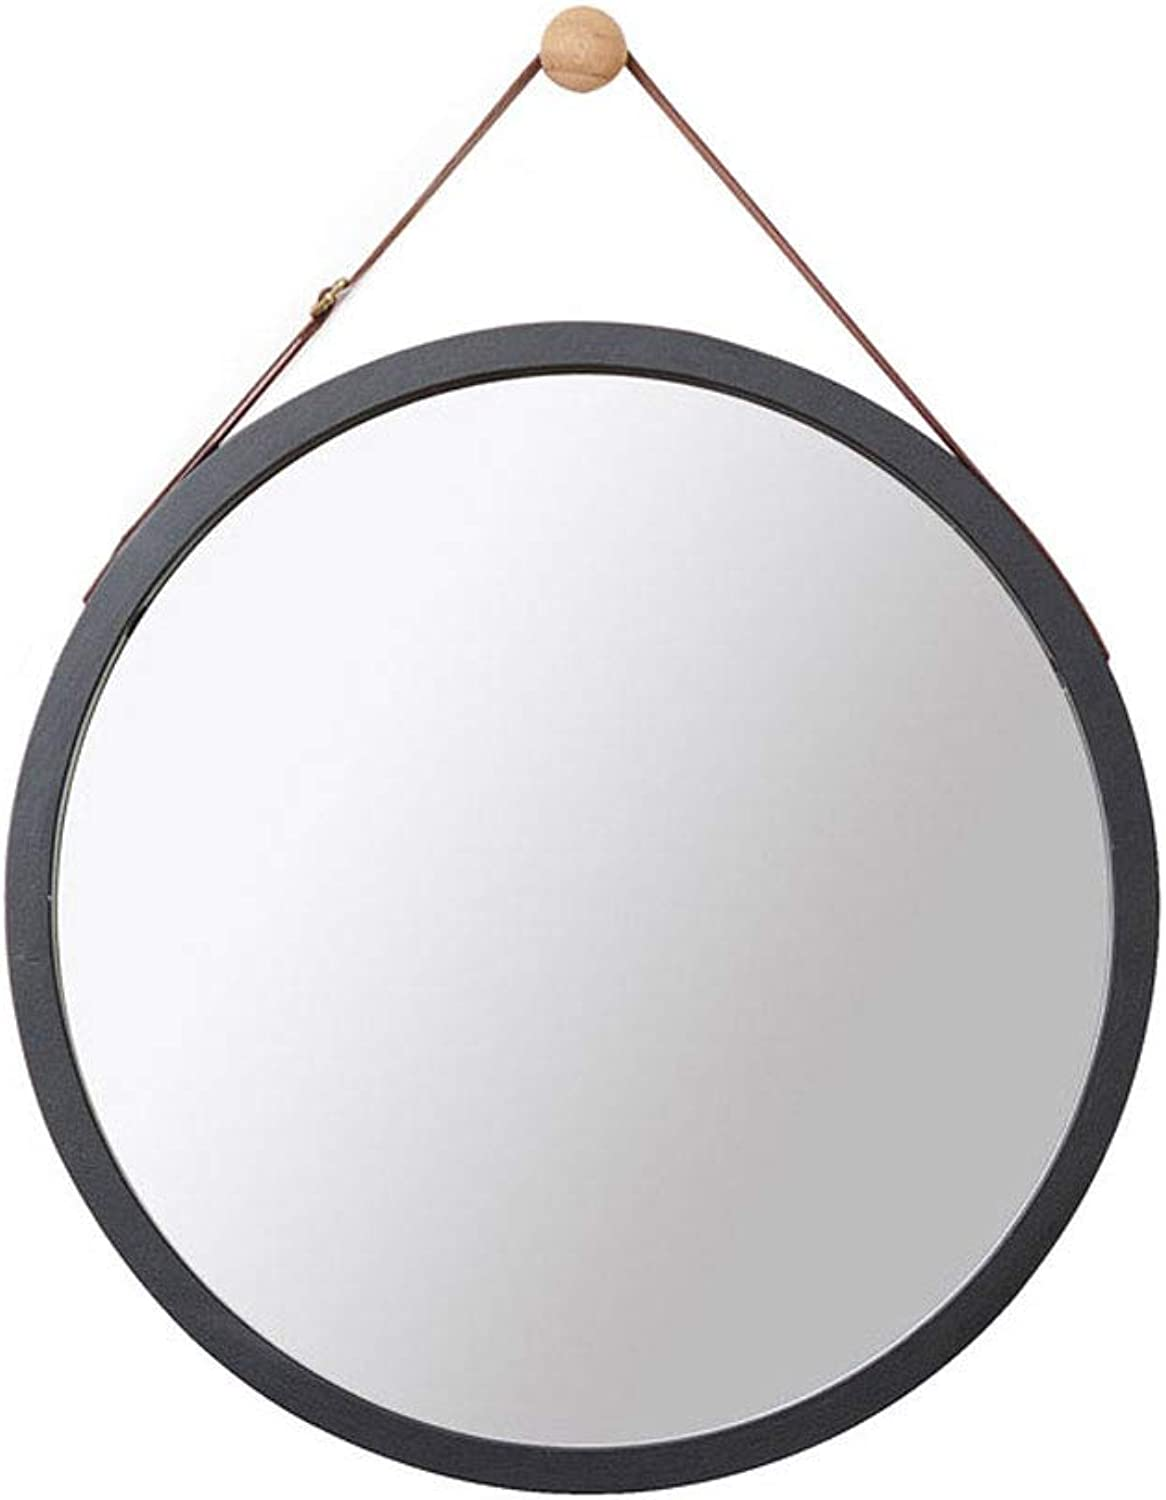 Indoor Decorations Household Mirror - Nordic Style Wall-Mounted Mirror Mirror Vanity Mirror 3 colors, 3 Sizes  (color   2, Size   B)